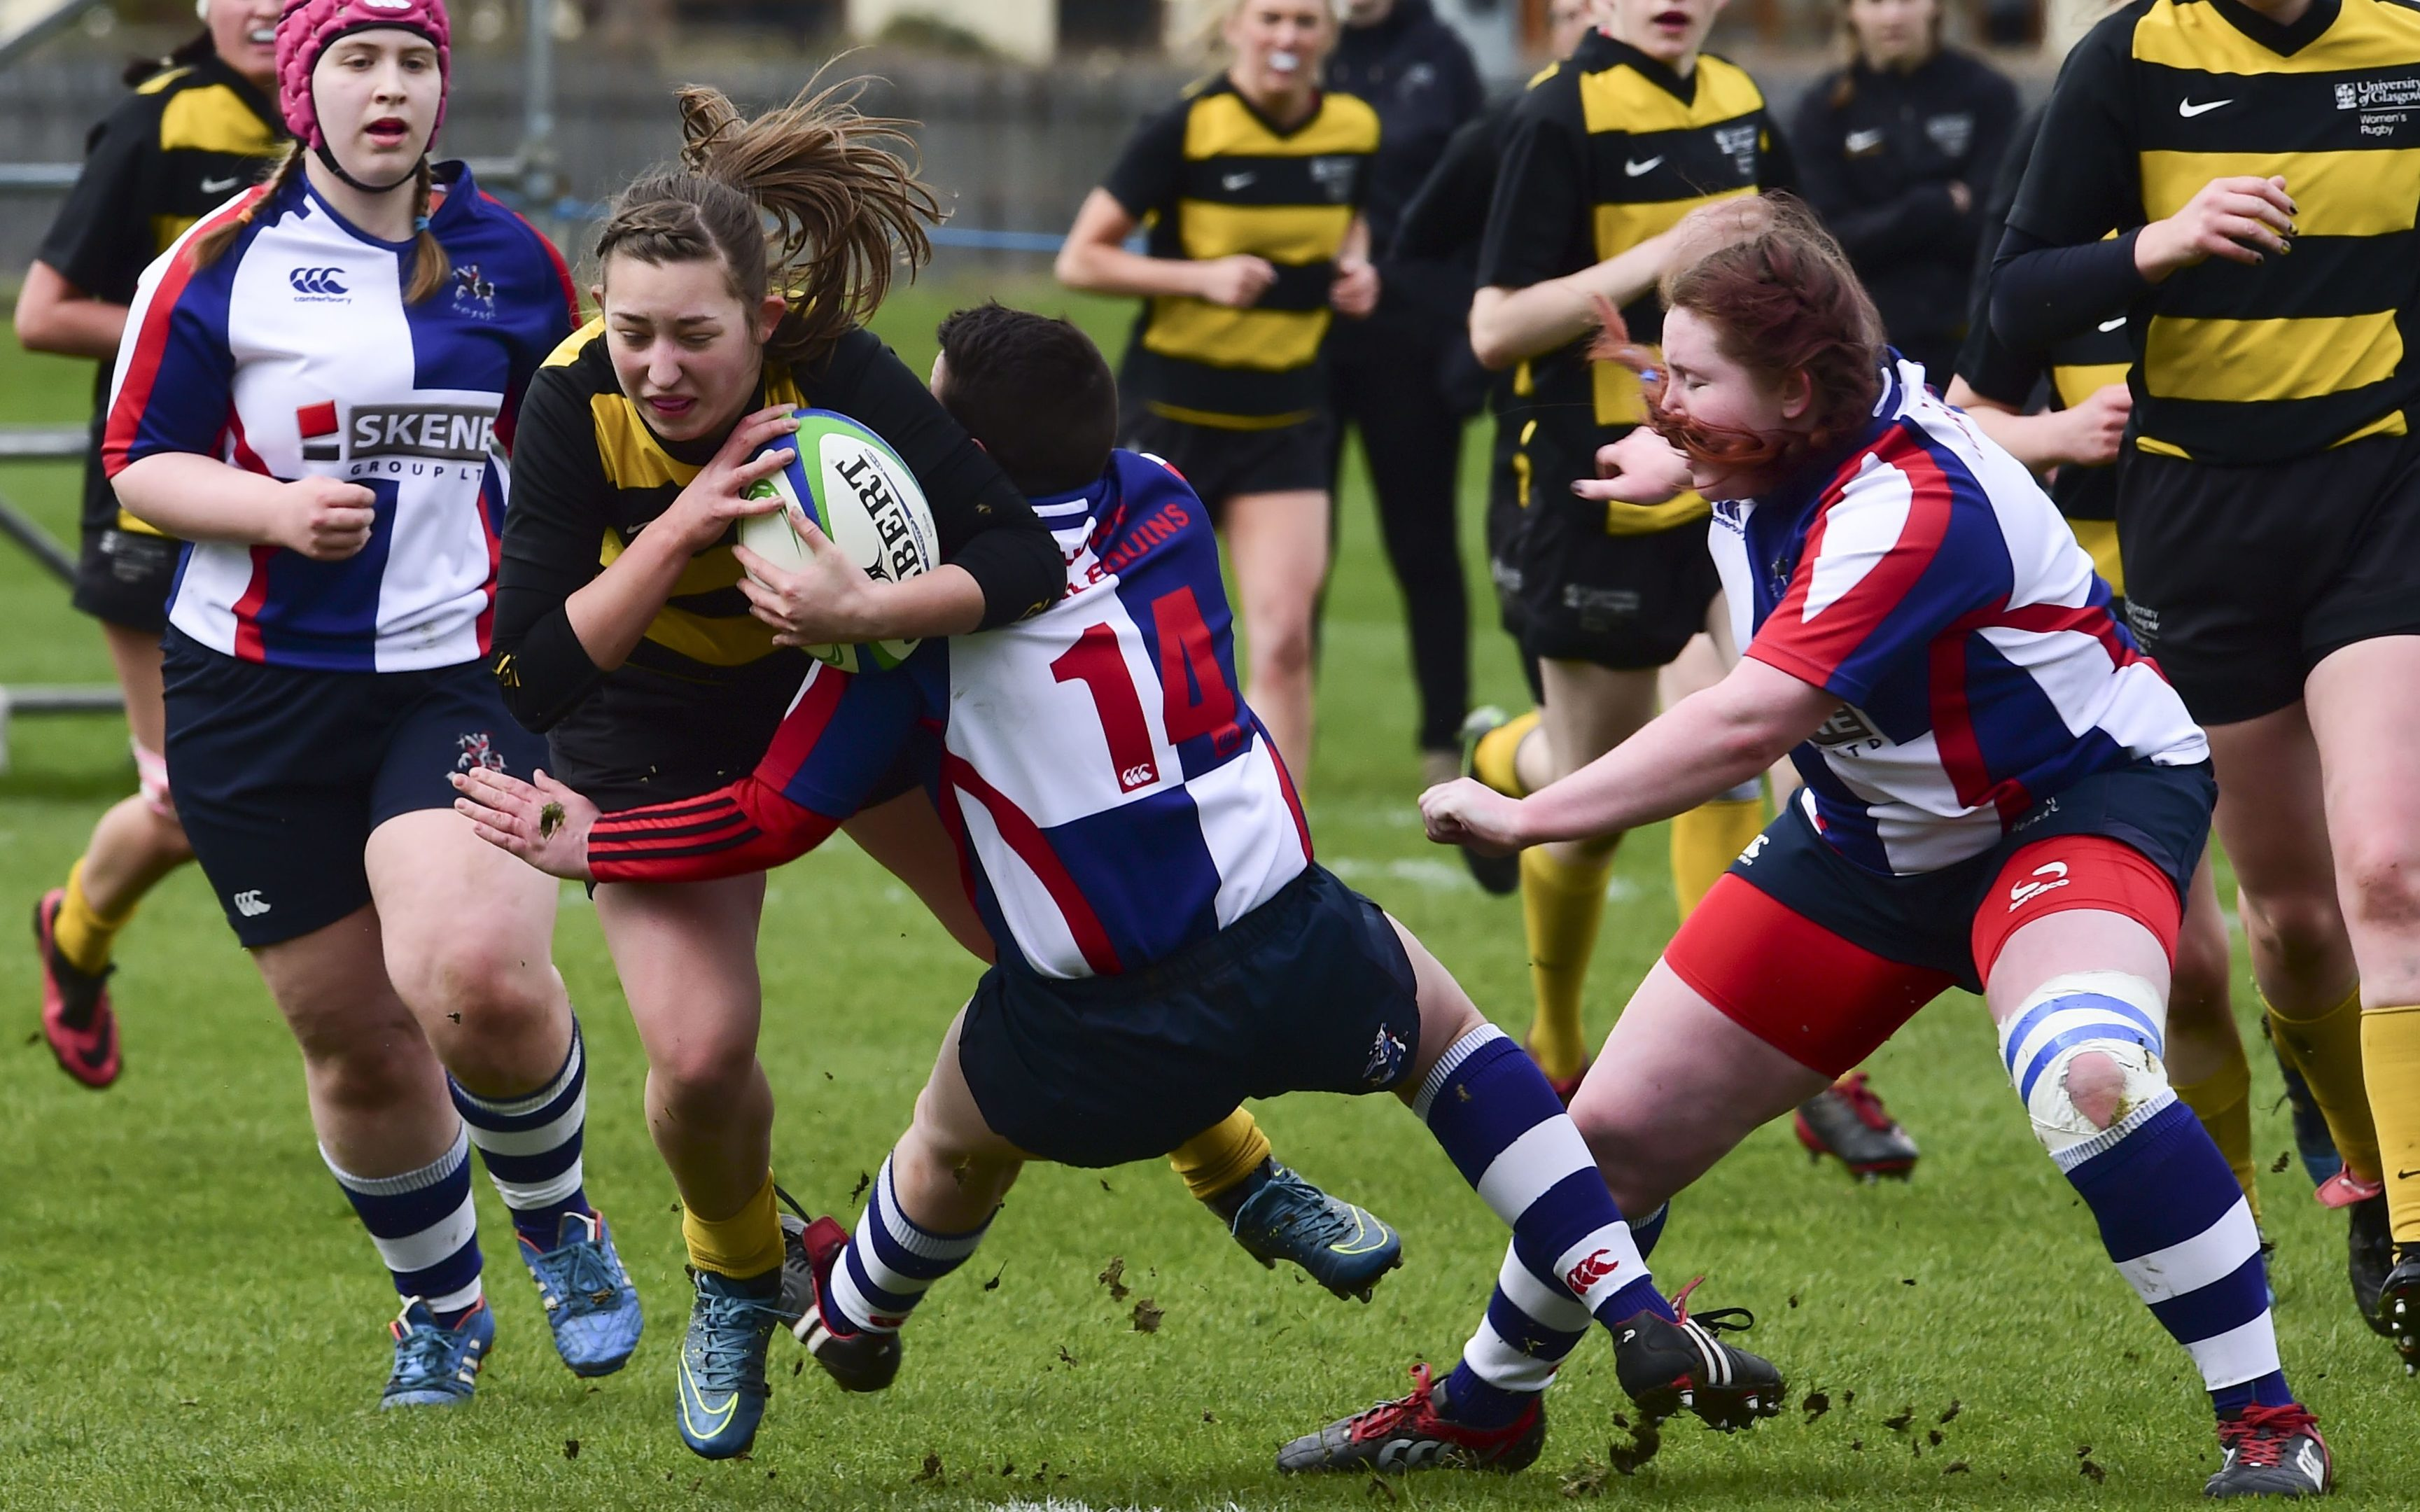 Cupar-based Howe Harlequins took on Glasgow University in the BT Women's Bowl Final at Murrayfield in April 2016